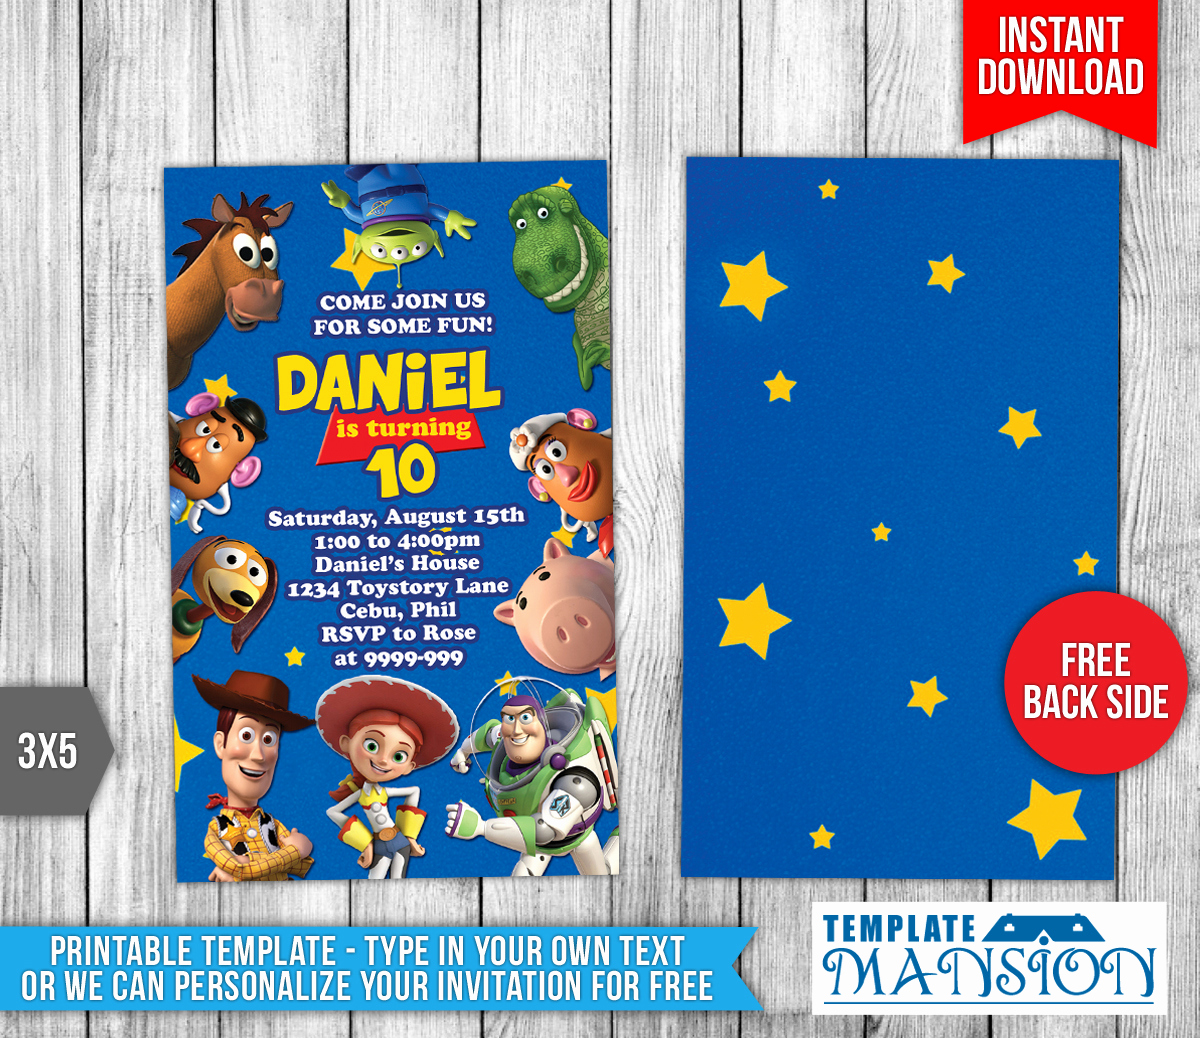 Toy Story Invitation Template Elegant toy Story Invitations Templates